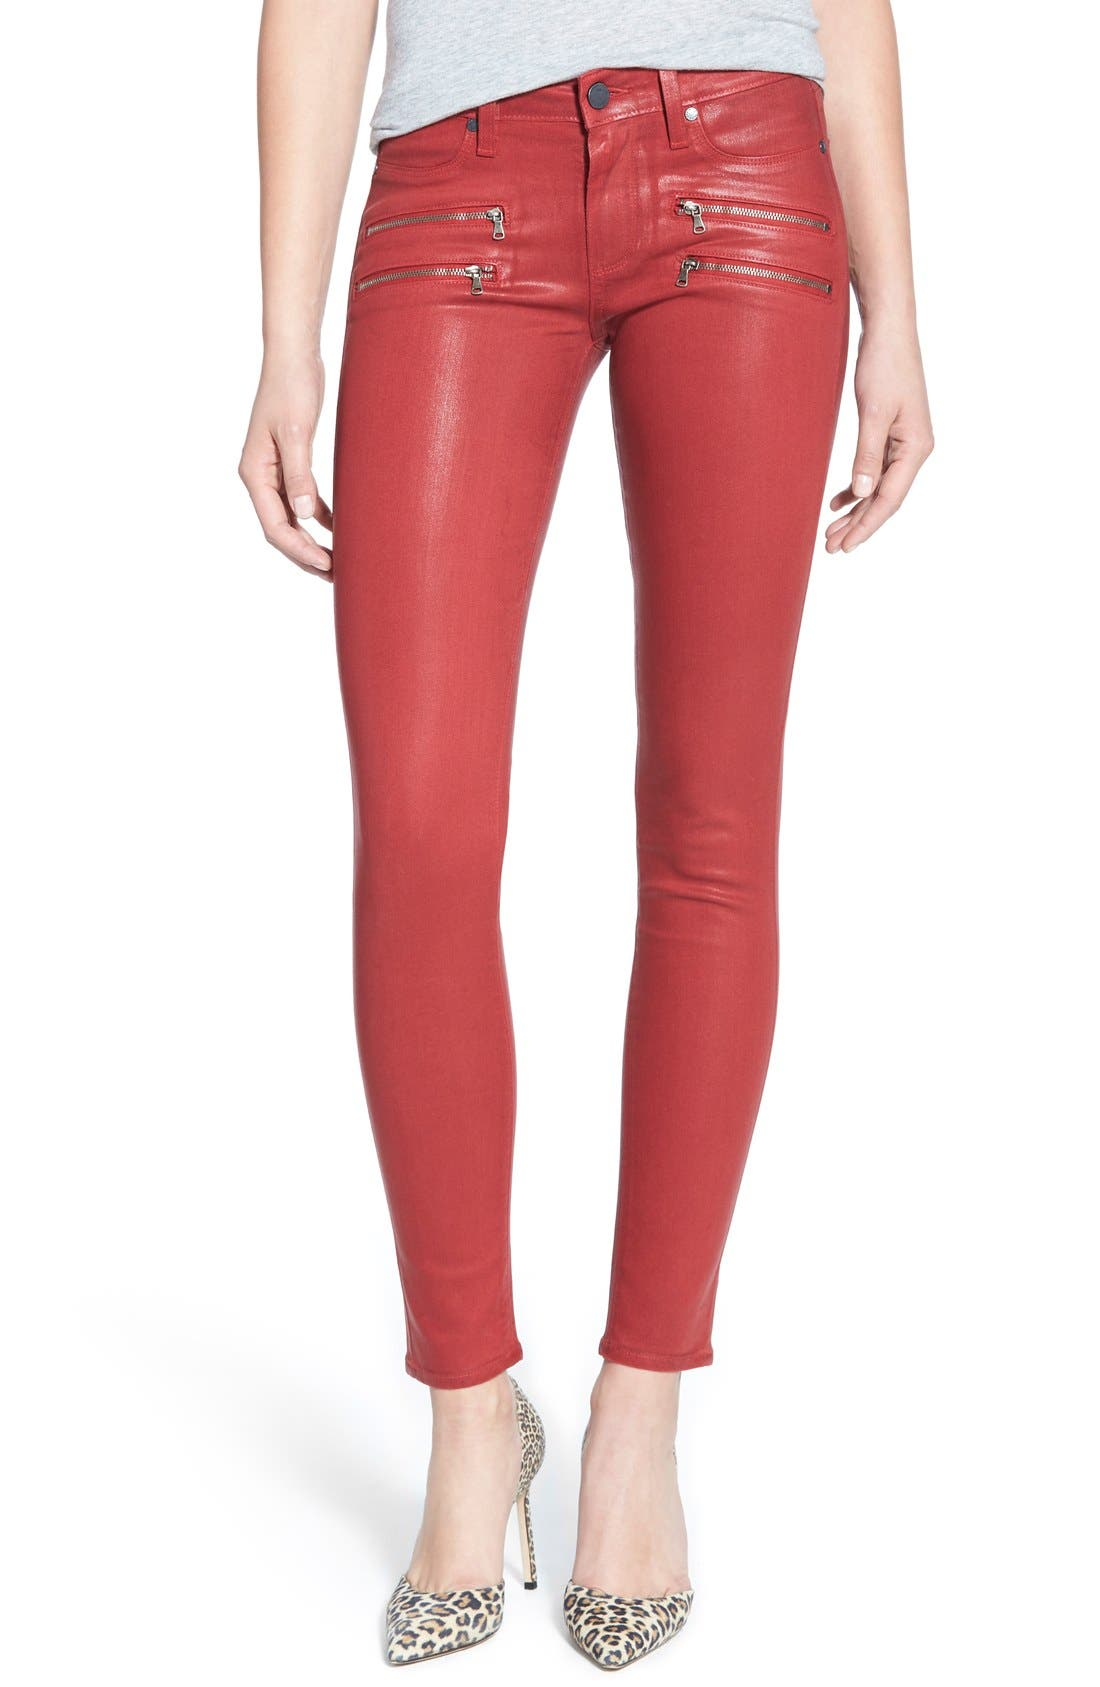 Alternate Image 1 Selected - Paige Denim 'Edgemont' Coated Ultra Skinny Jeans (Brick Silk)